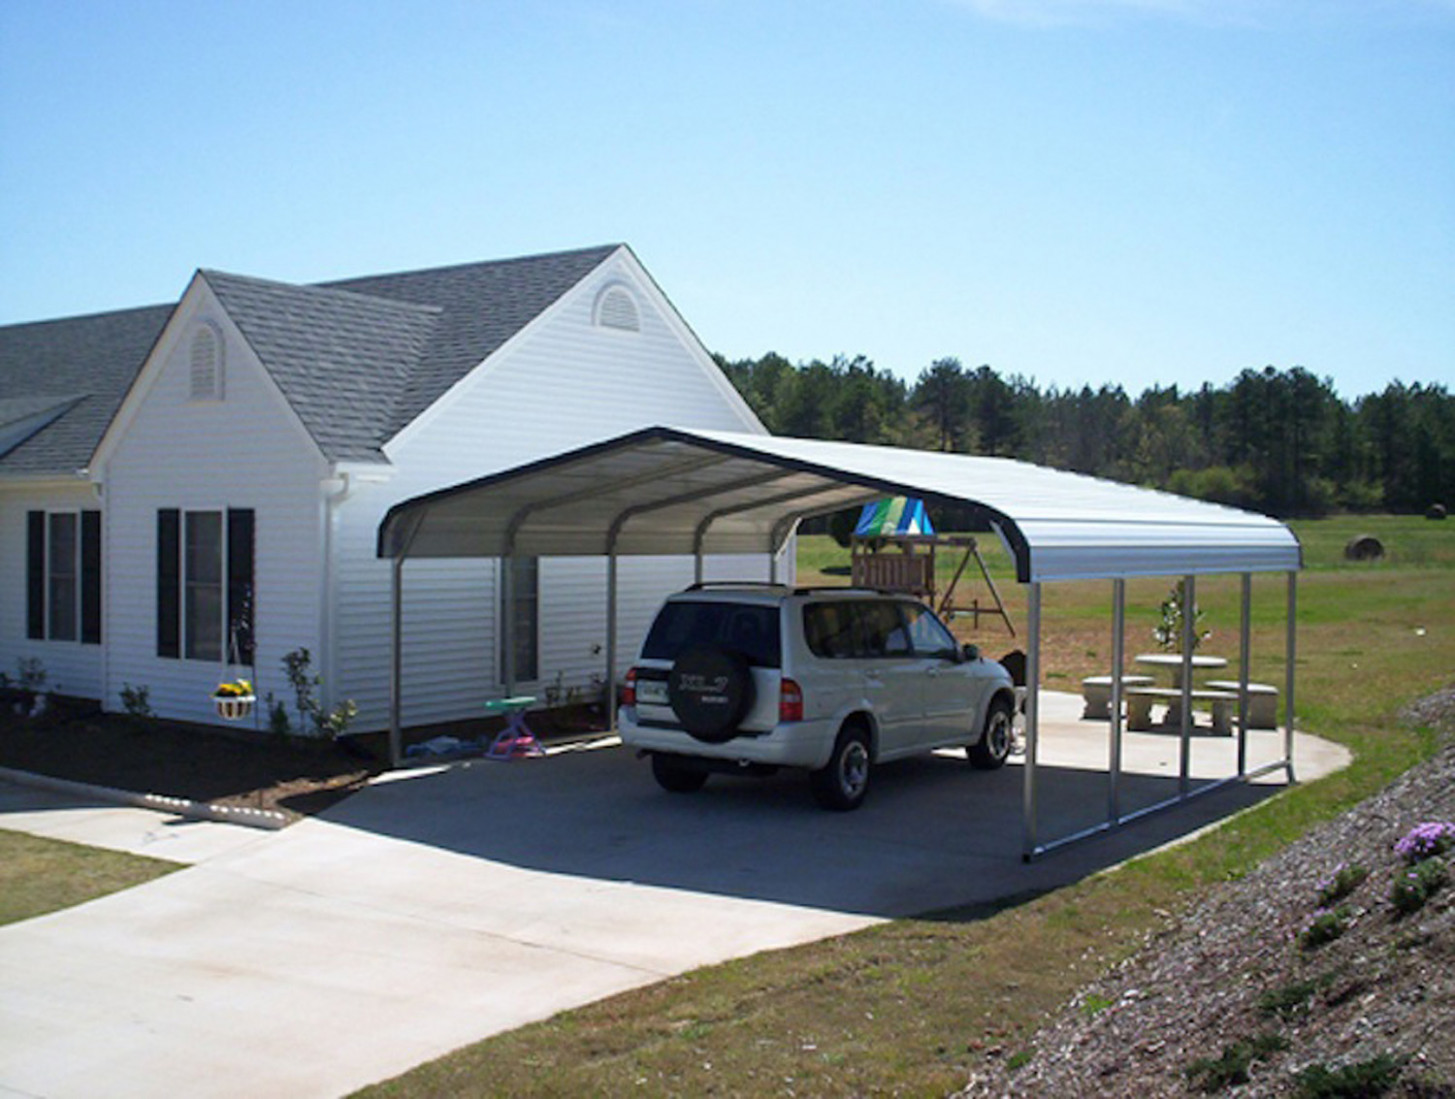 Carportsnsheds   Buying Guide Carport Flat Roof Plans